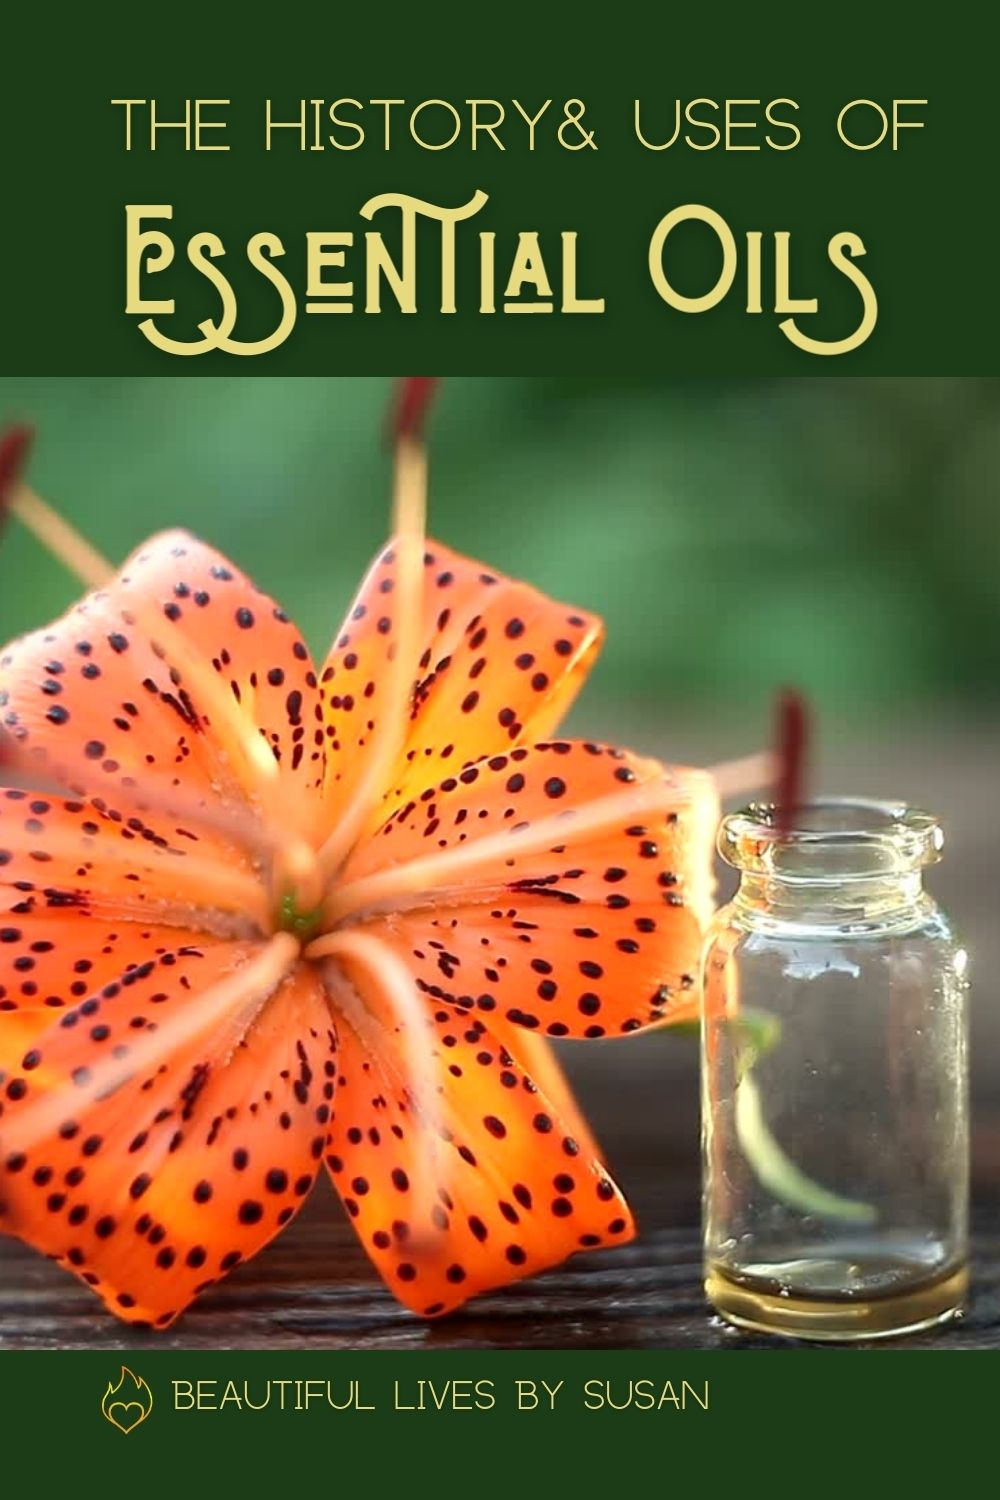 The History and Uses of Essential Oils